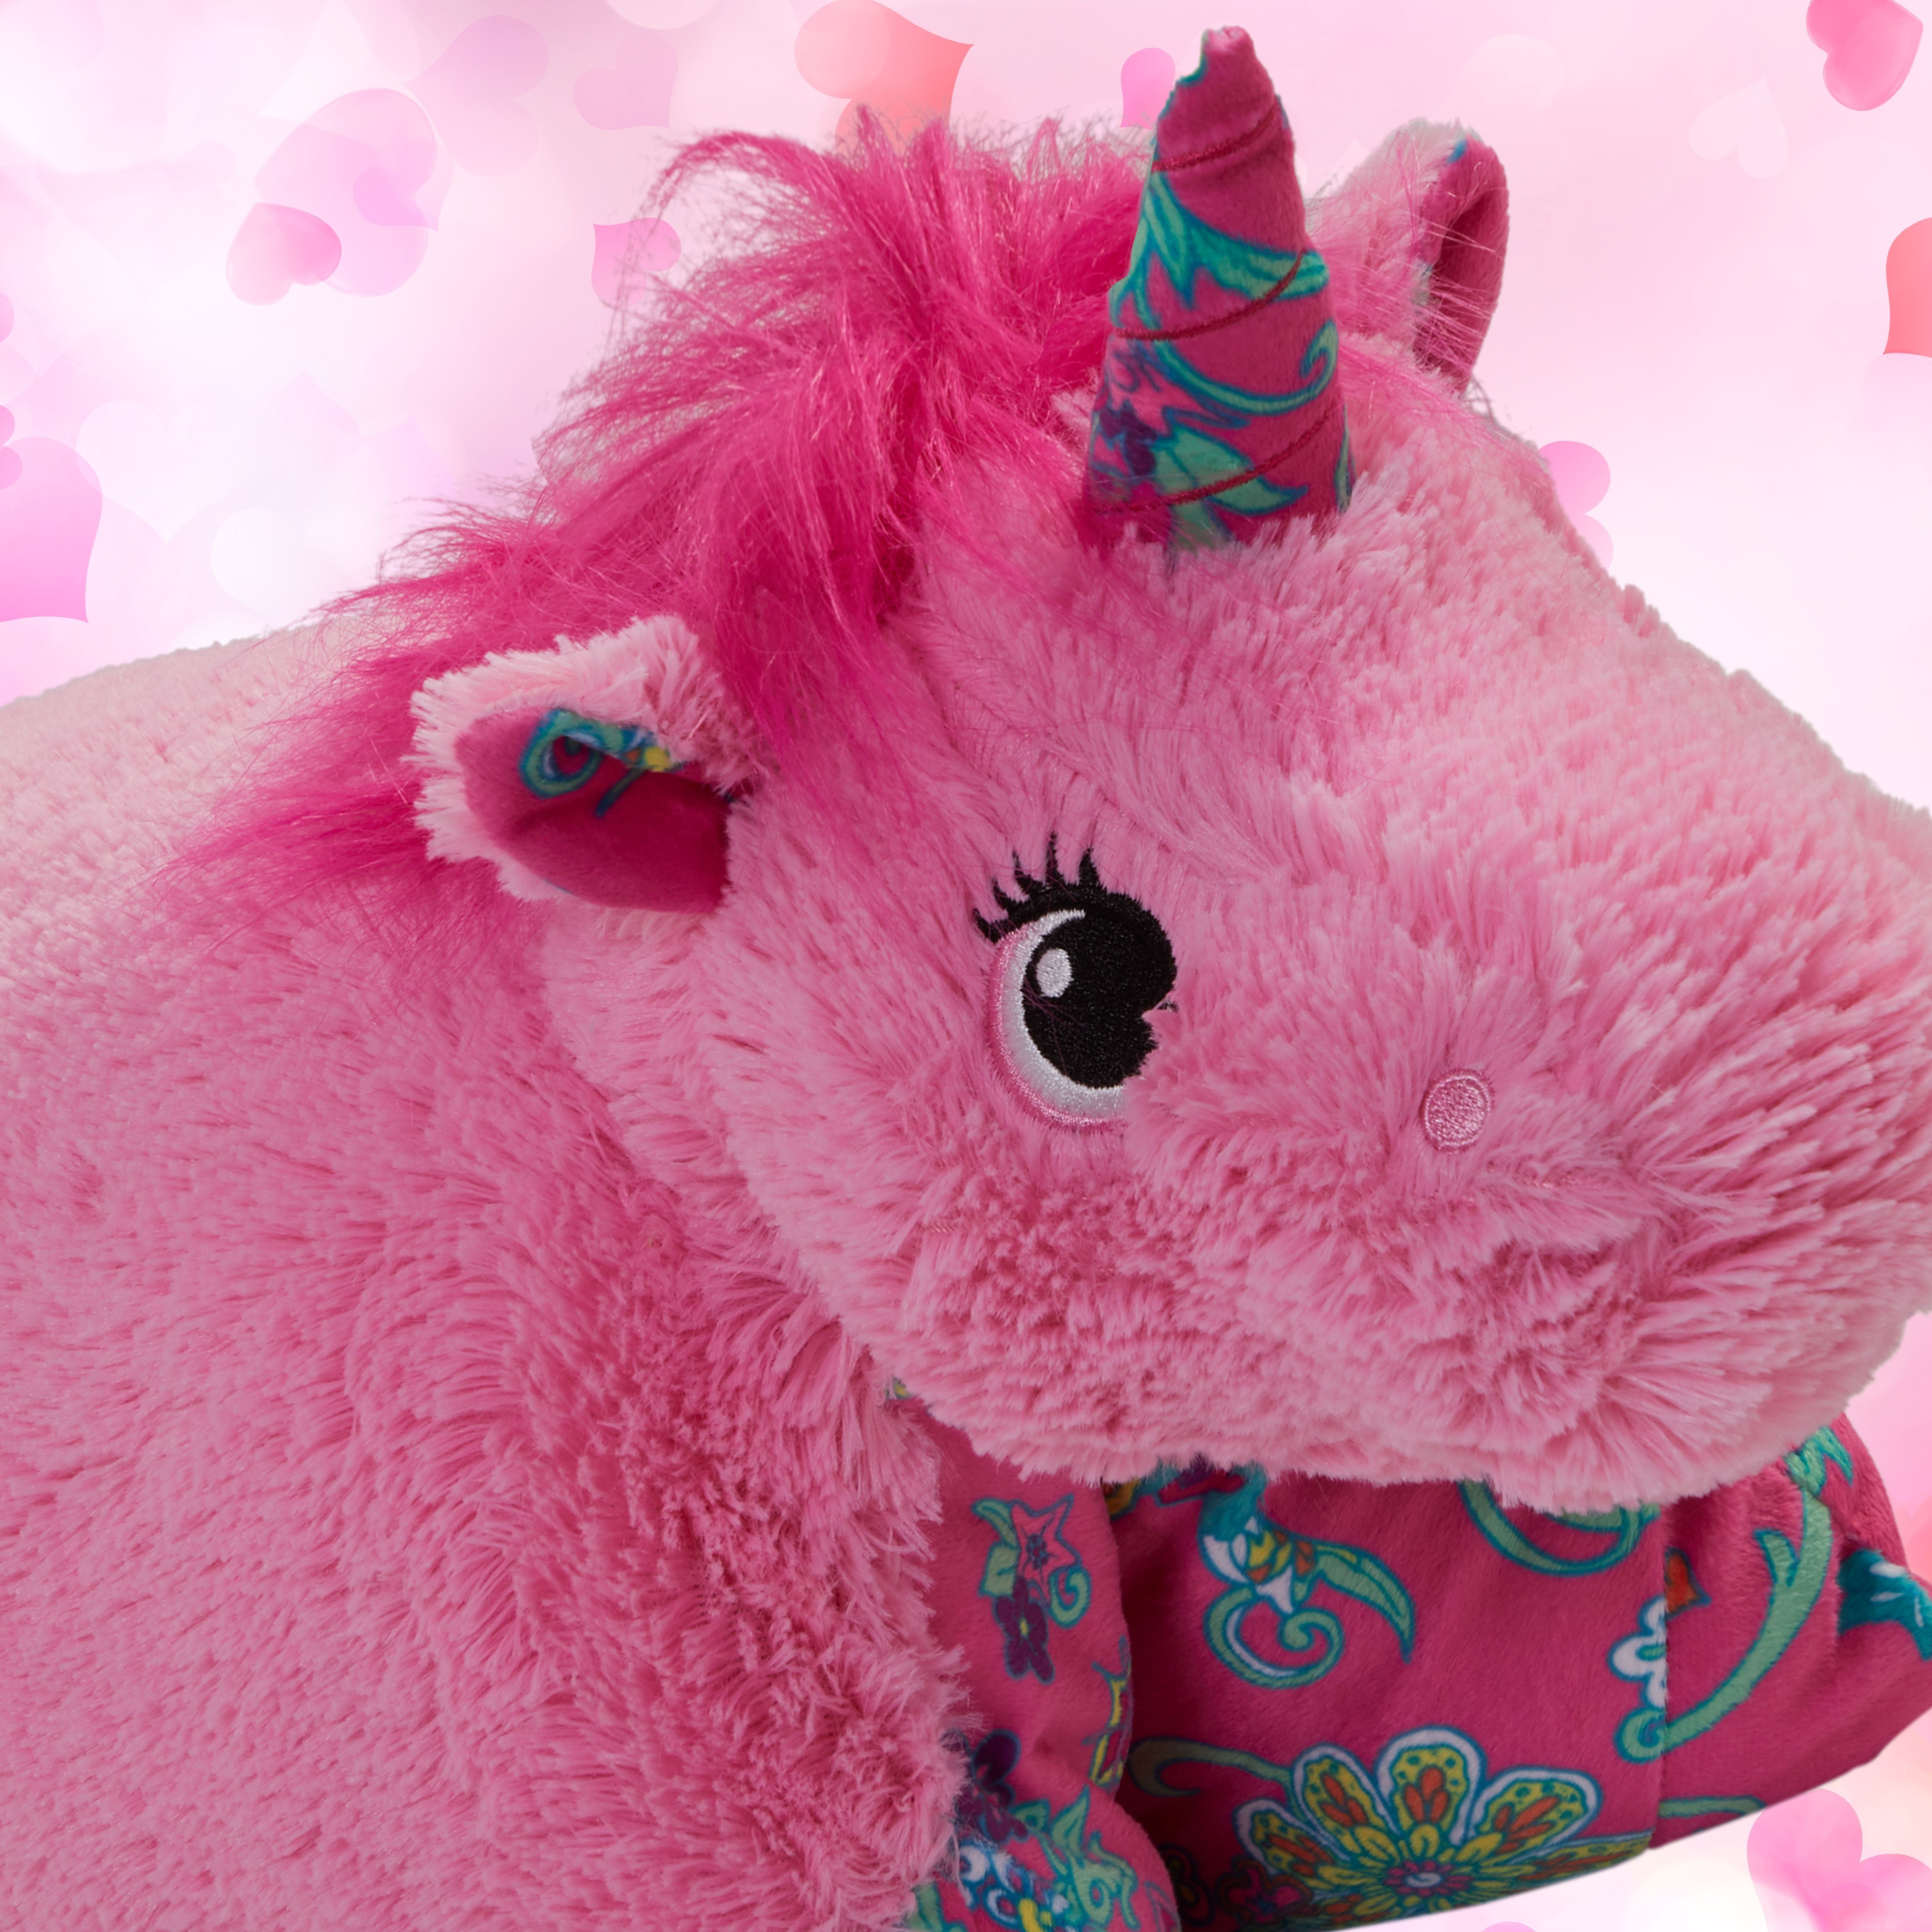 The Pillow Pets Pink Unicorn Is The Most Enchanting Stuffed